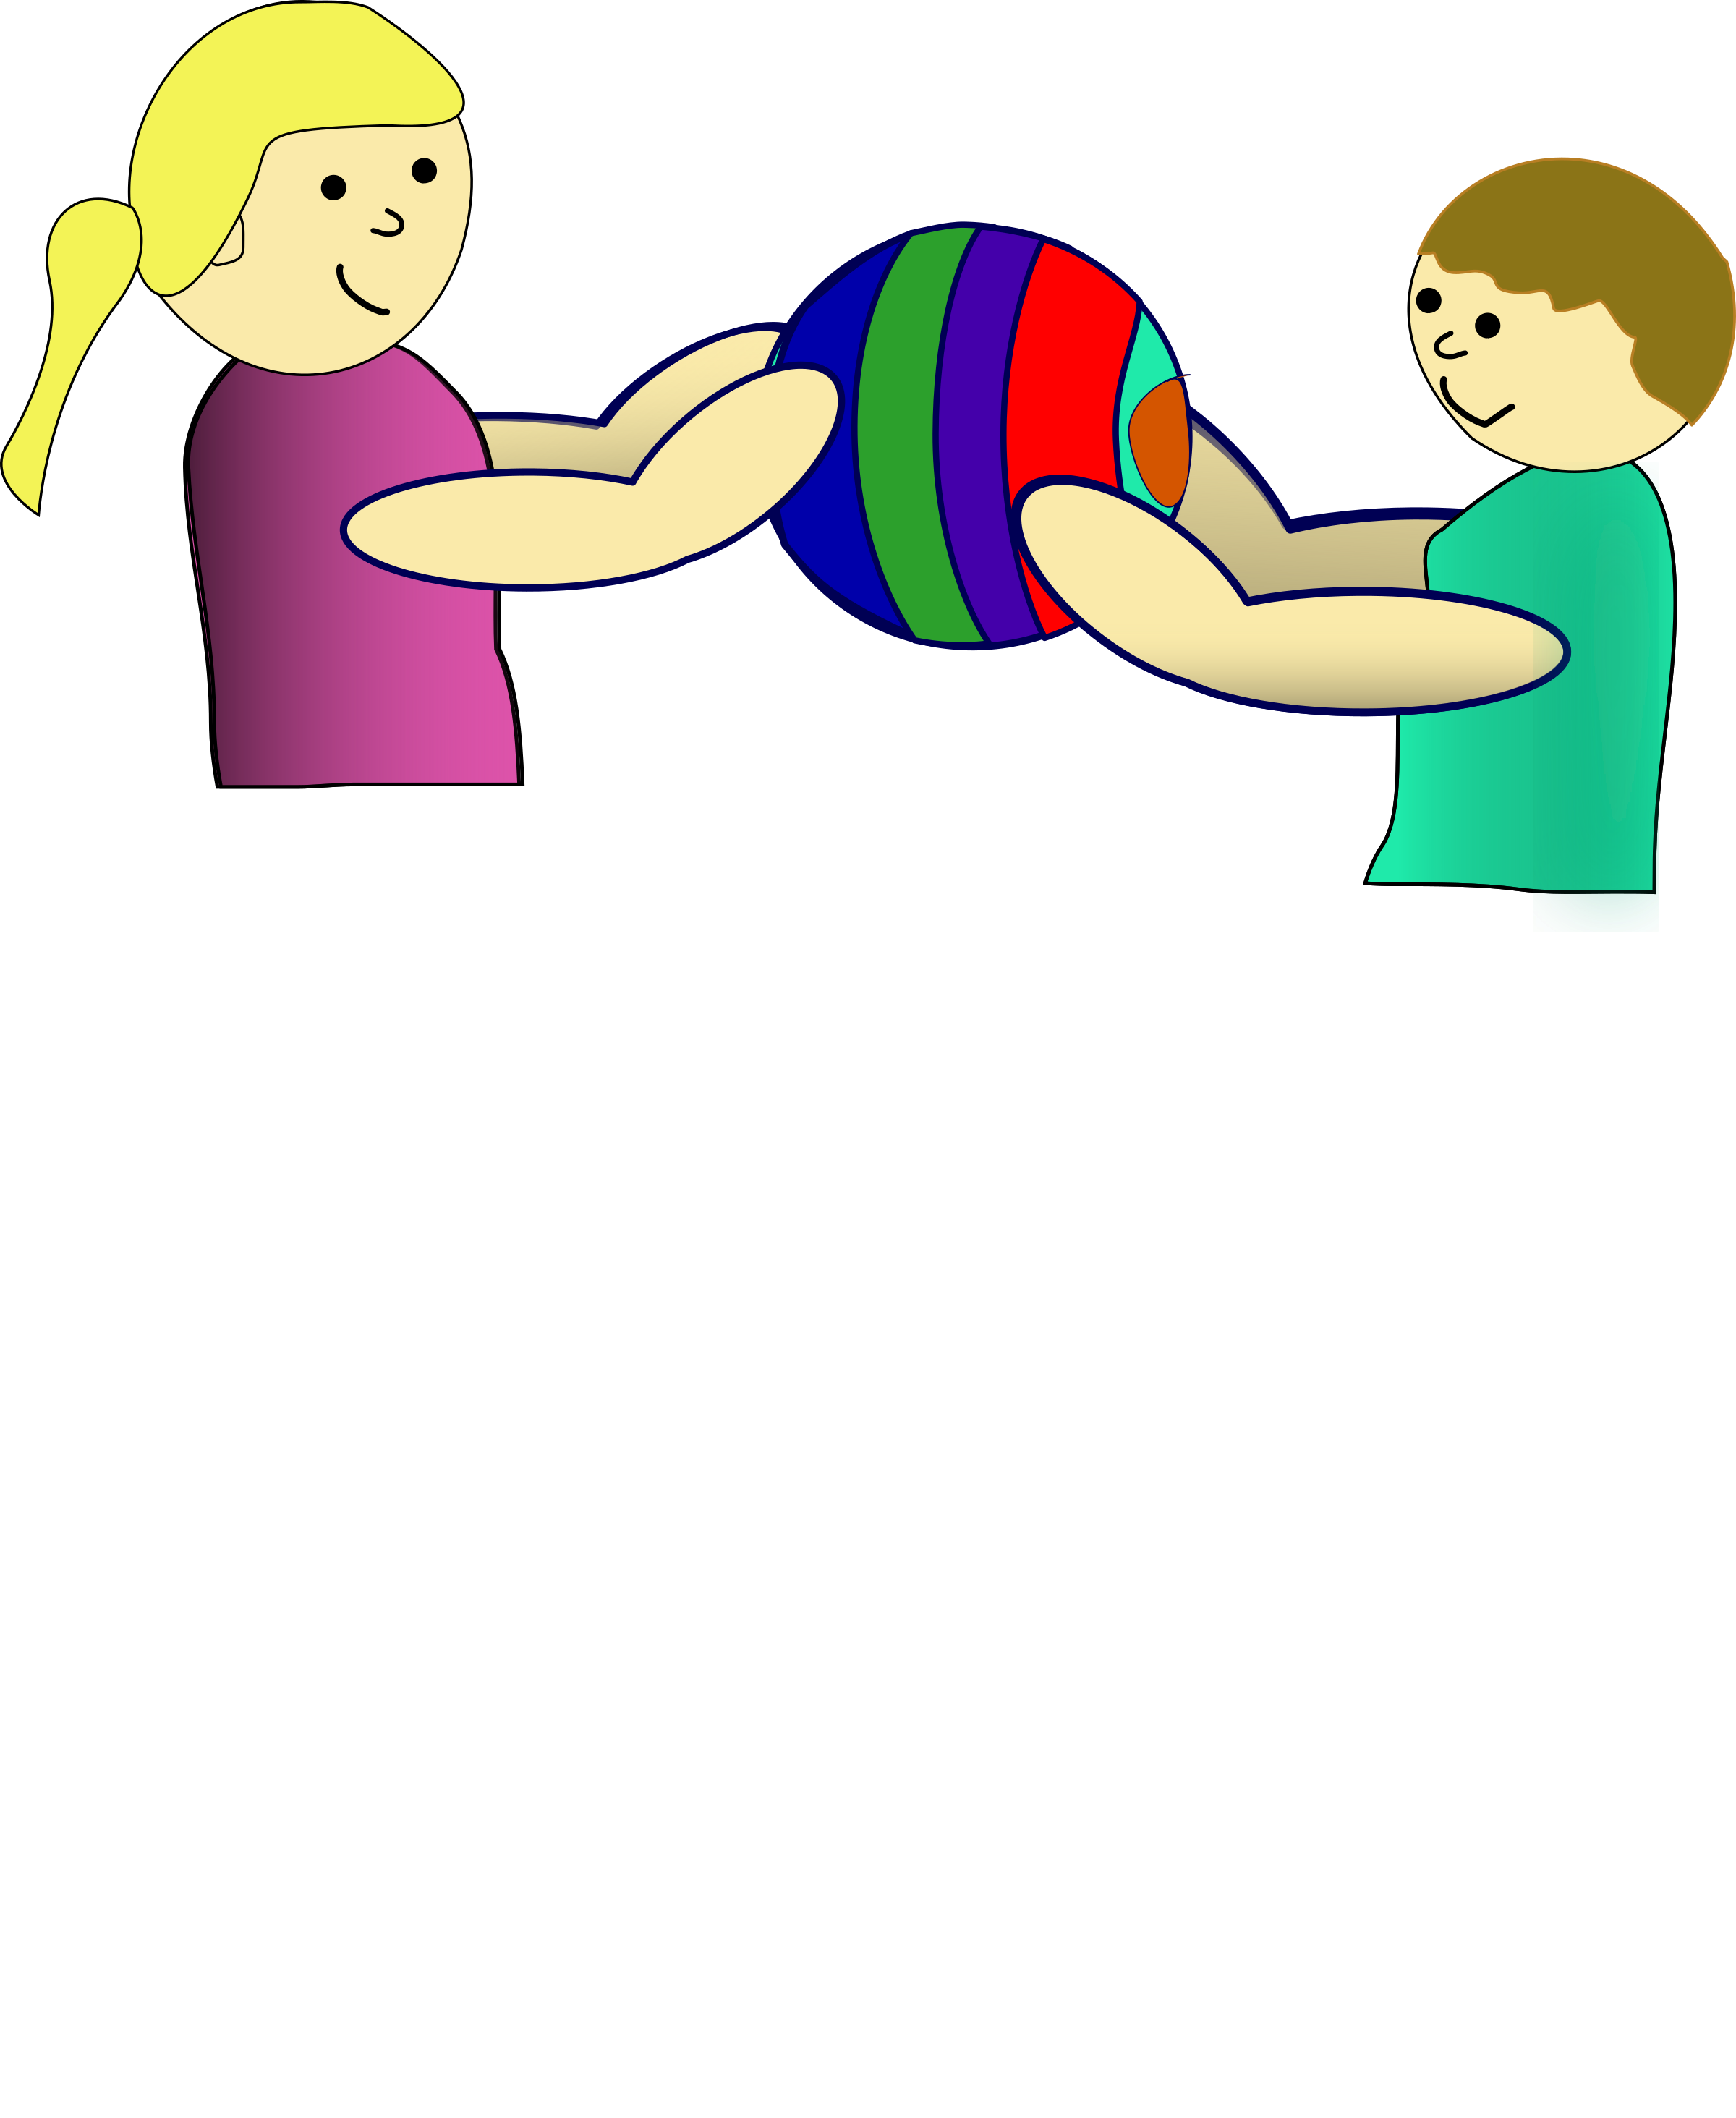 Children sharing a ball. Microsoft clipart clip art